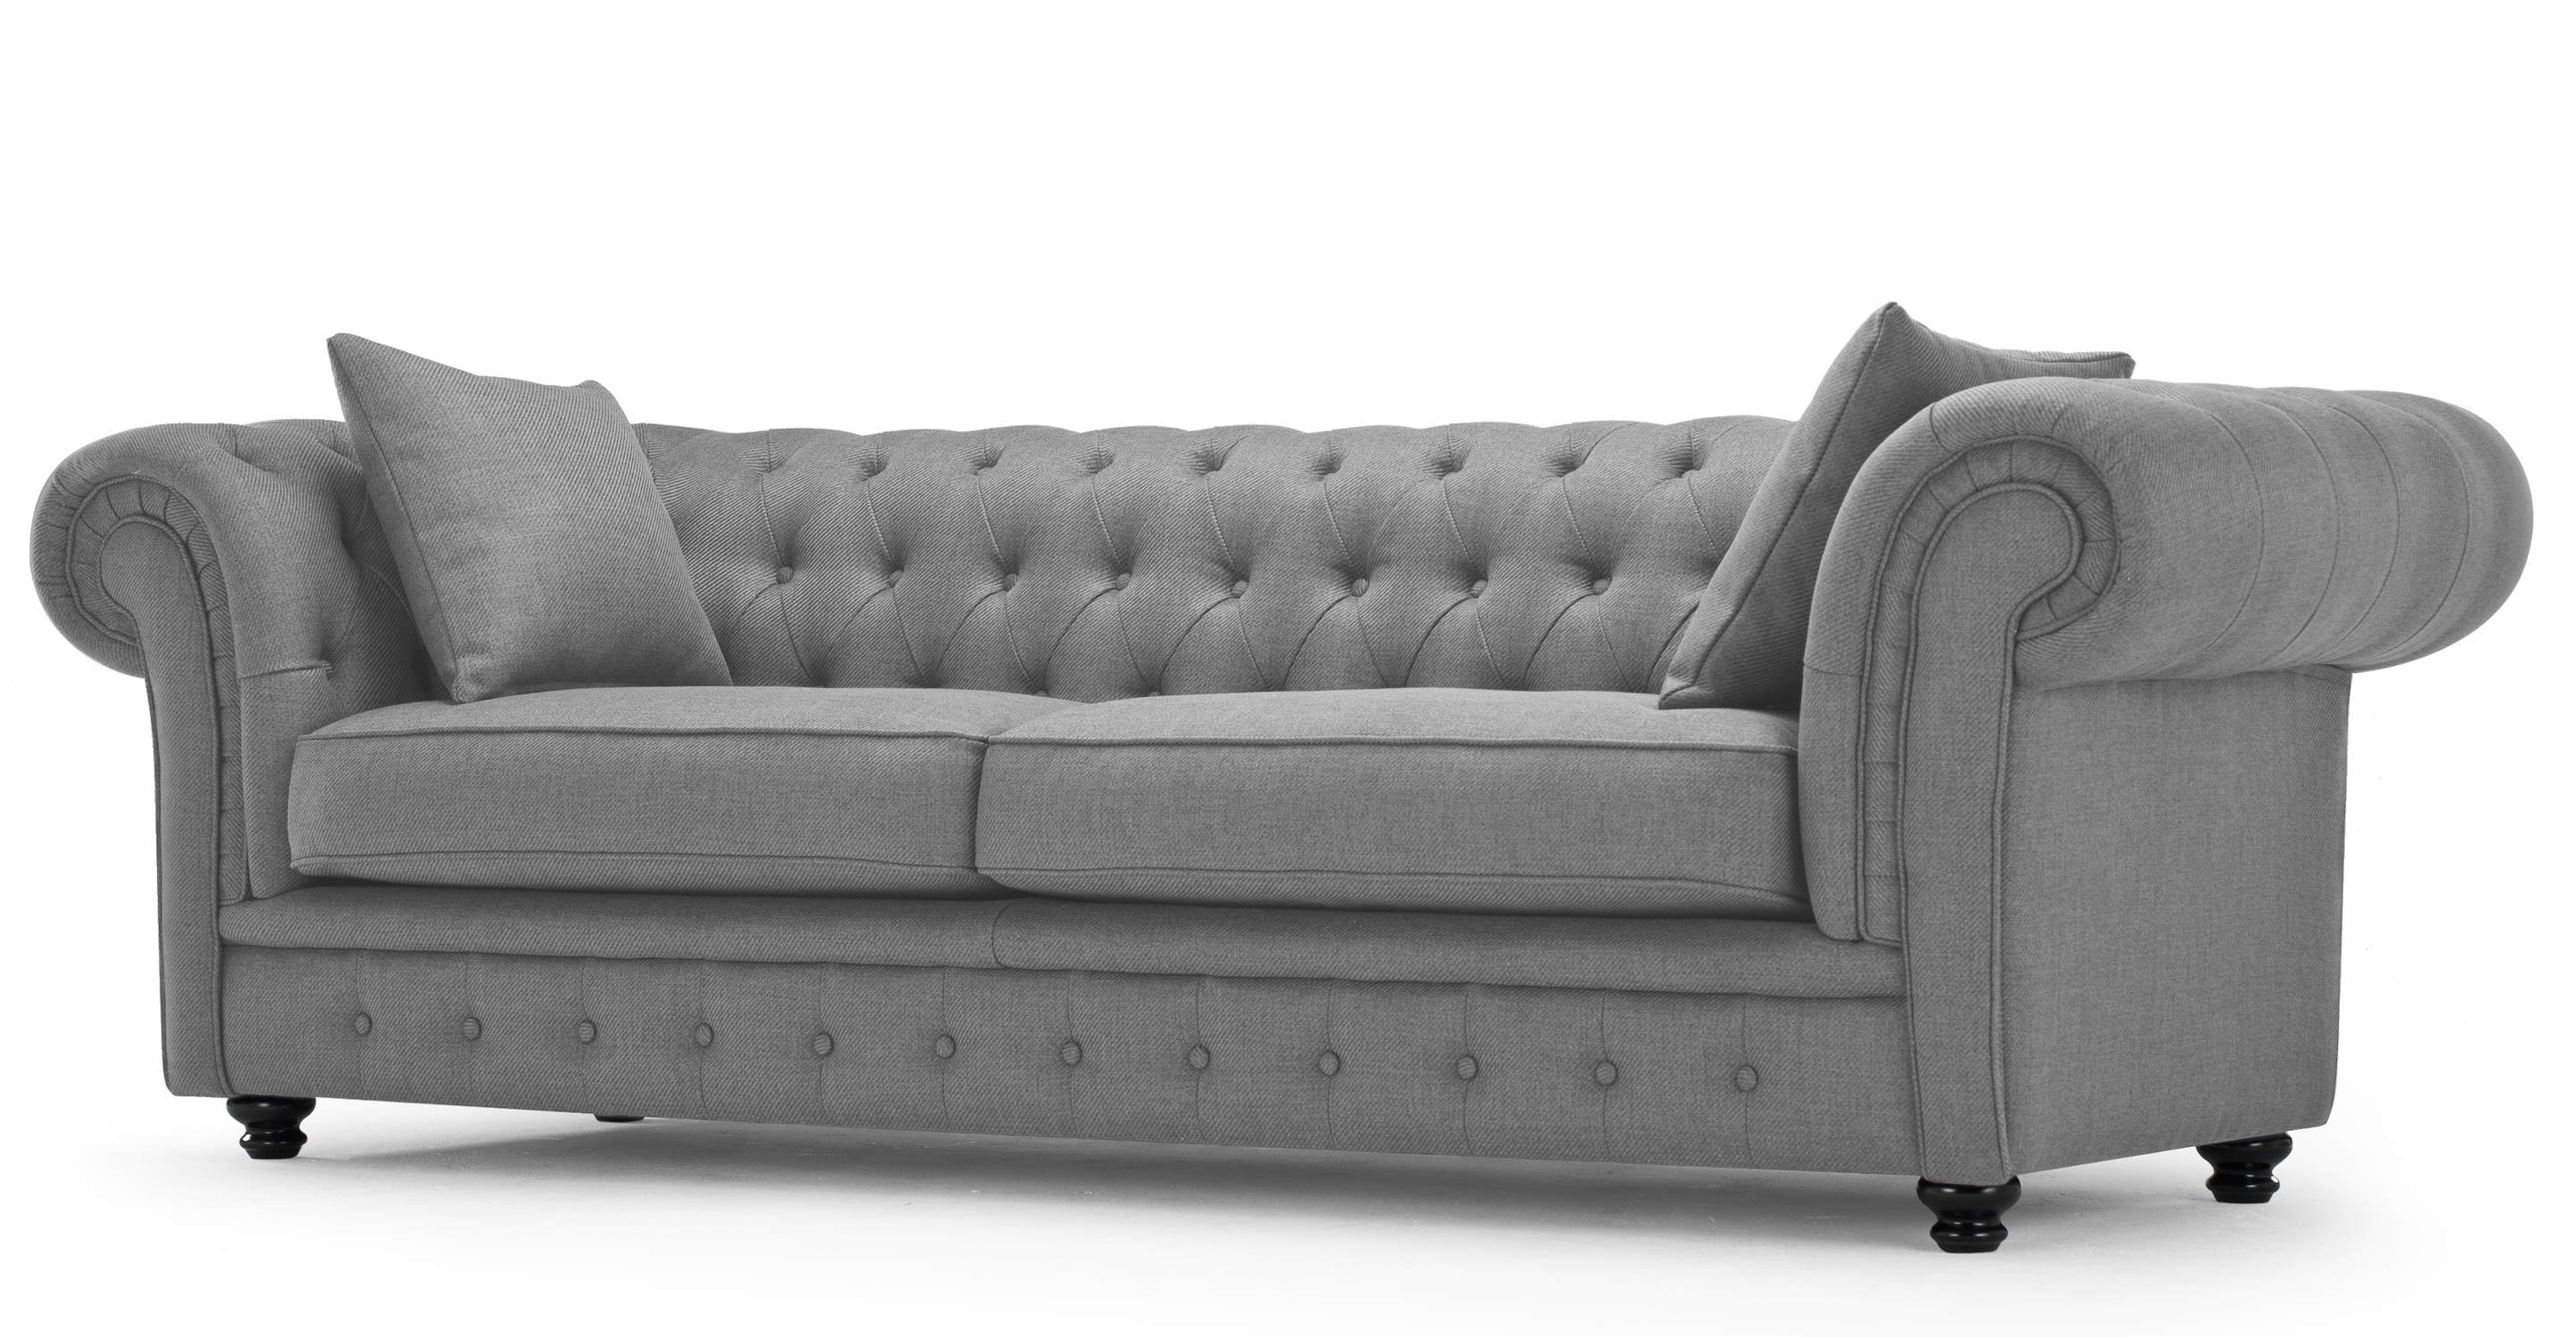 ☆▻ Sofa : Wonderful Chesterfield Tufted Sofa Modern Couches On Inside Affordable Tufted Sofas (View 10 of 20)